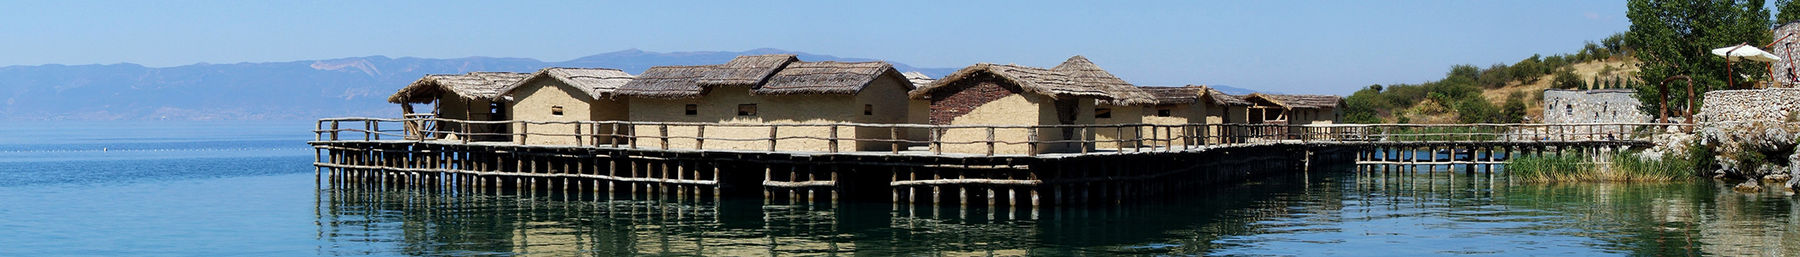 Museum on Water, Ohrid